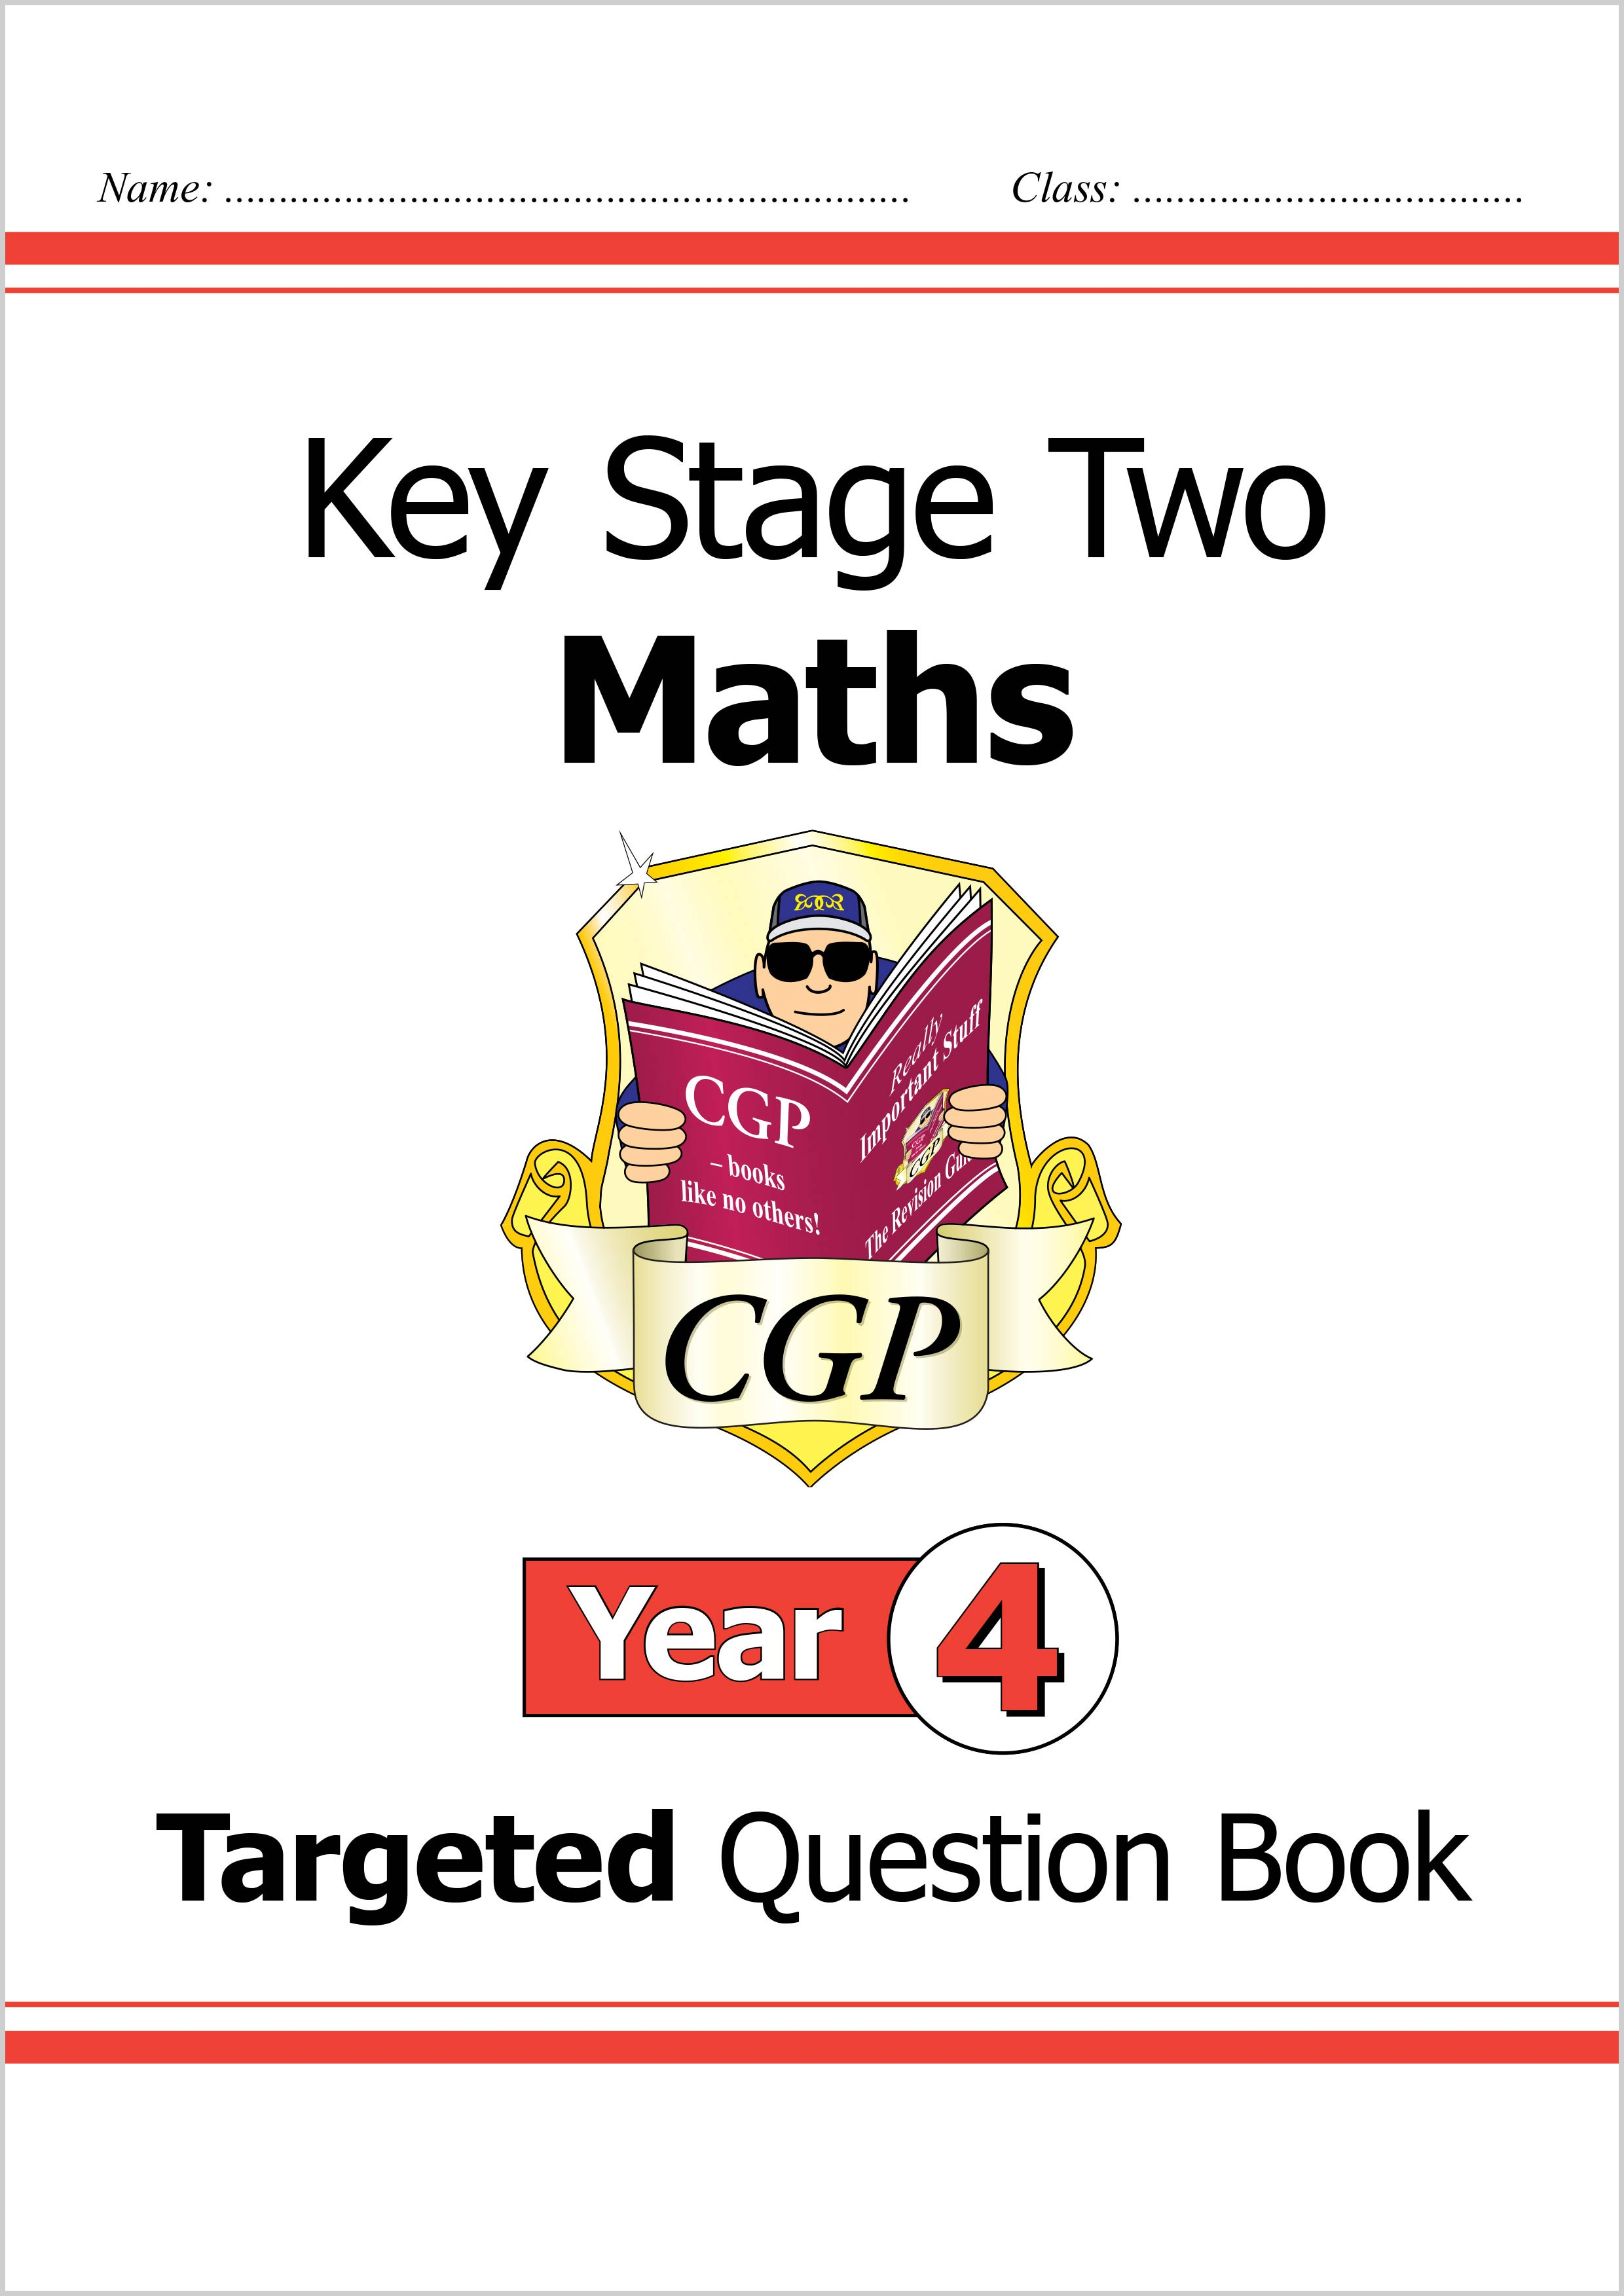 M4Q23DK - KS2 Maths Targeted Question Book - Year 4